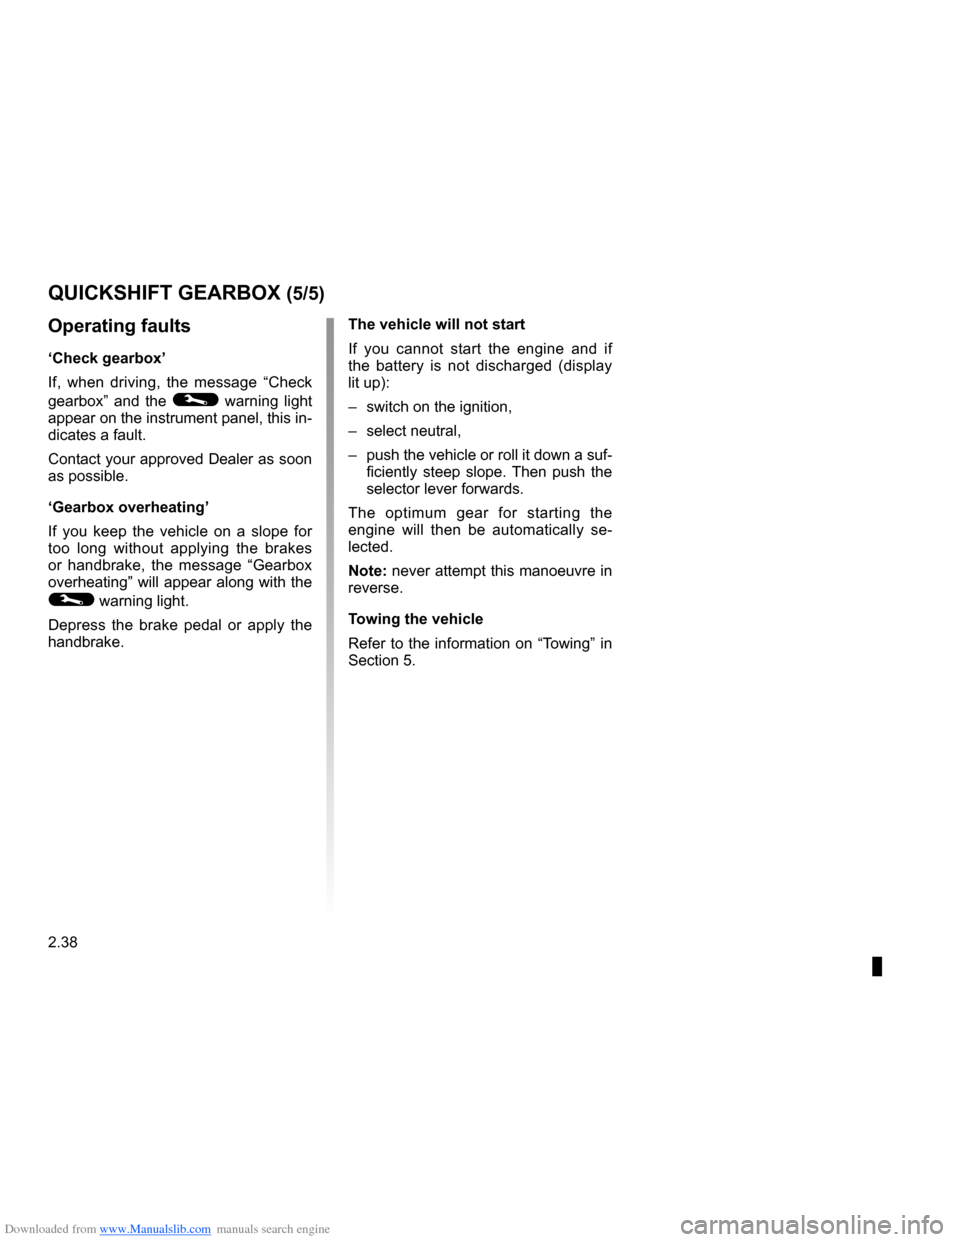 RENAULT CLIO 2009 X85 / 3.G Owners Manual, Page 130